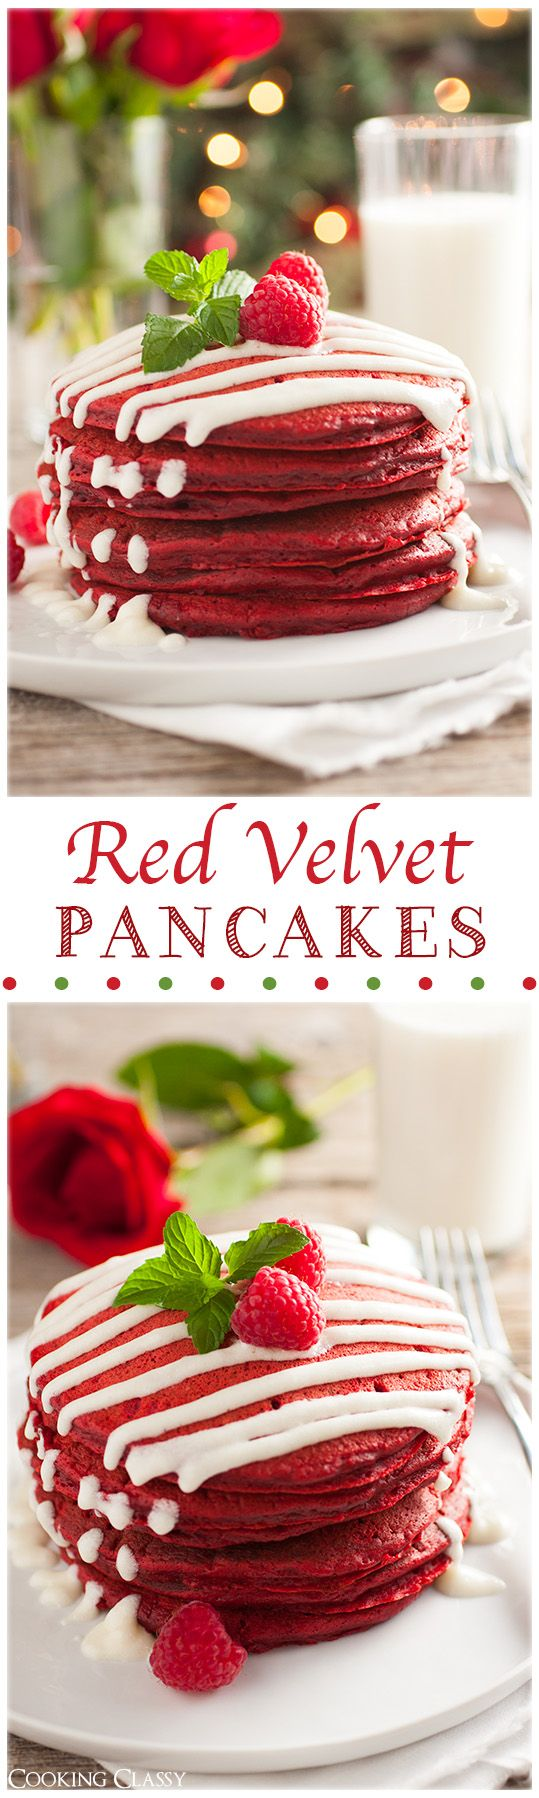 Red Velvet Pancakes with Cream Cheese Glaze - we have these for Christmas morning breakfast, they are AMAZING!! #pancakes #redvelvet